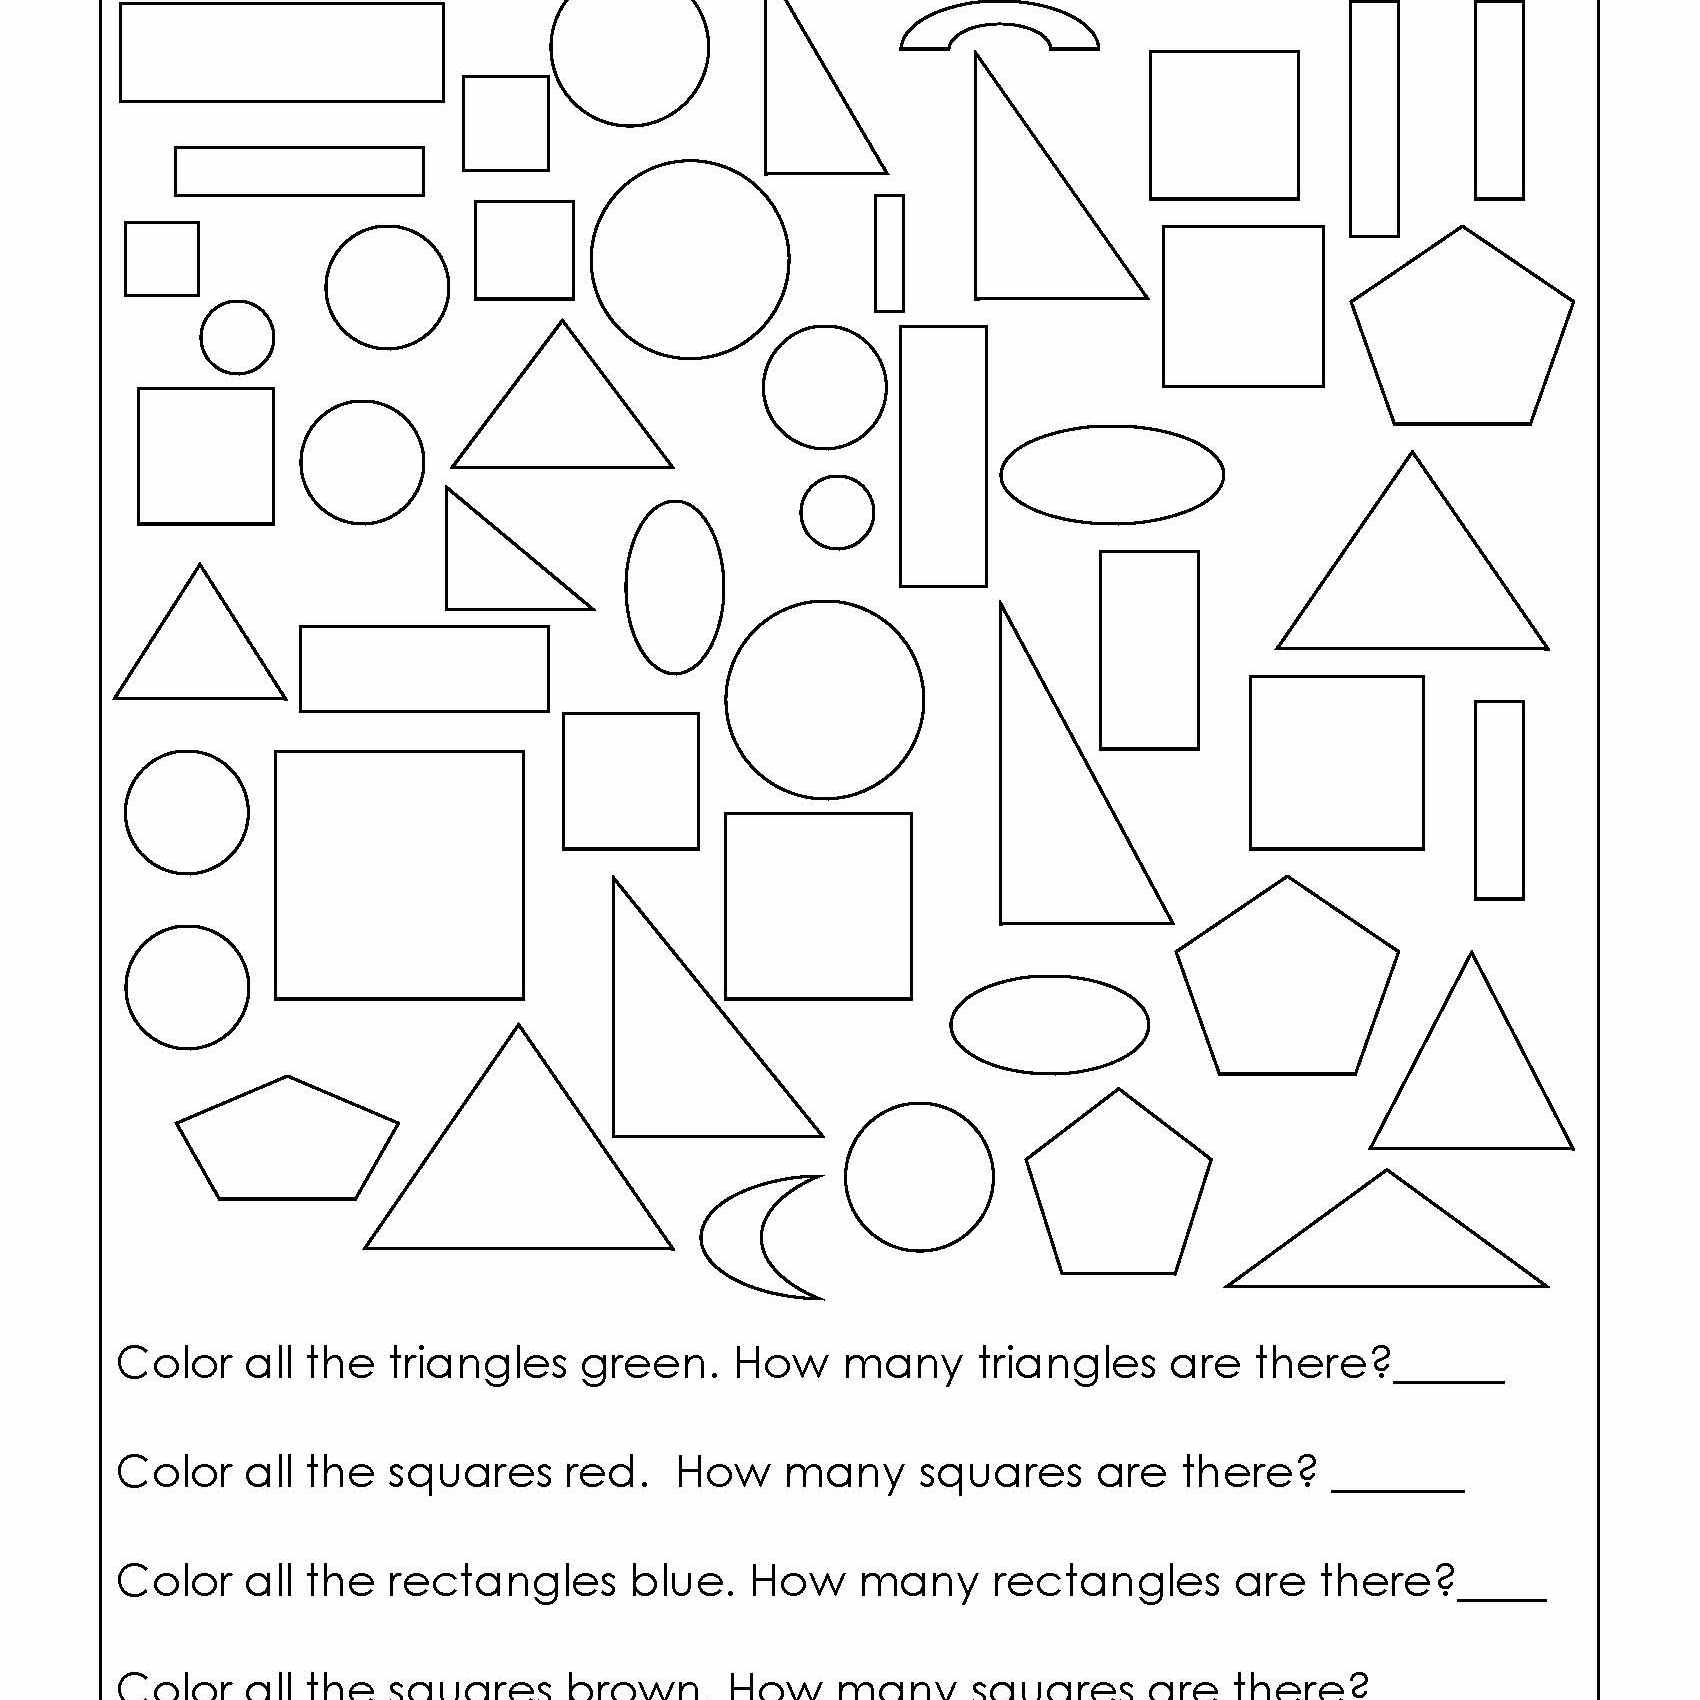 medium resolution of 2 Easy Printable Color by Addition Worksheet Geometry Worksheets for  Students in 1st Grade   Geometry worksheets